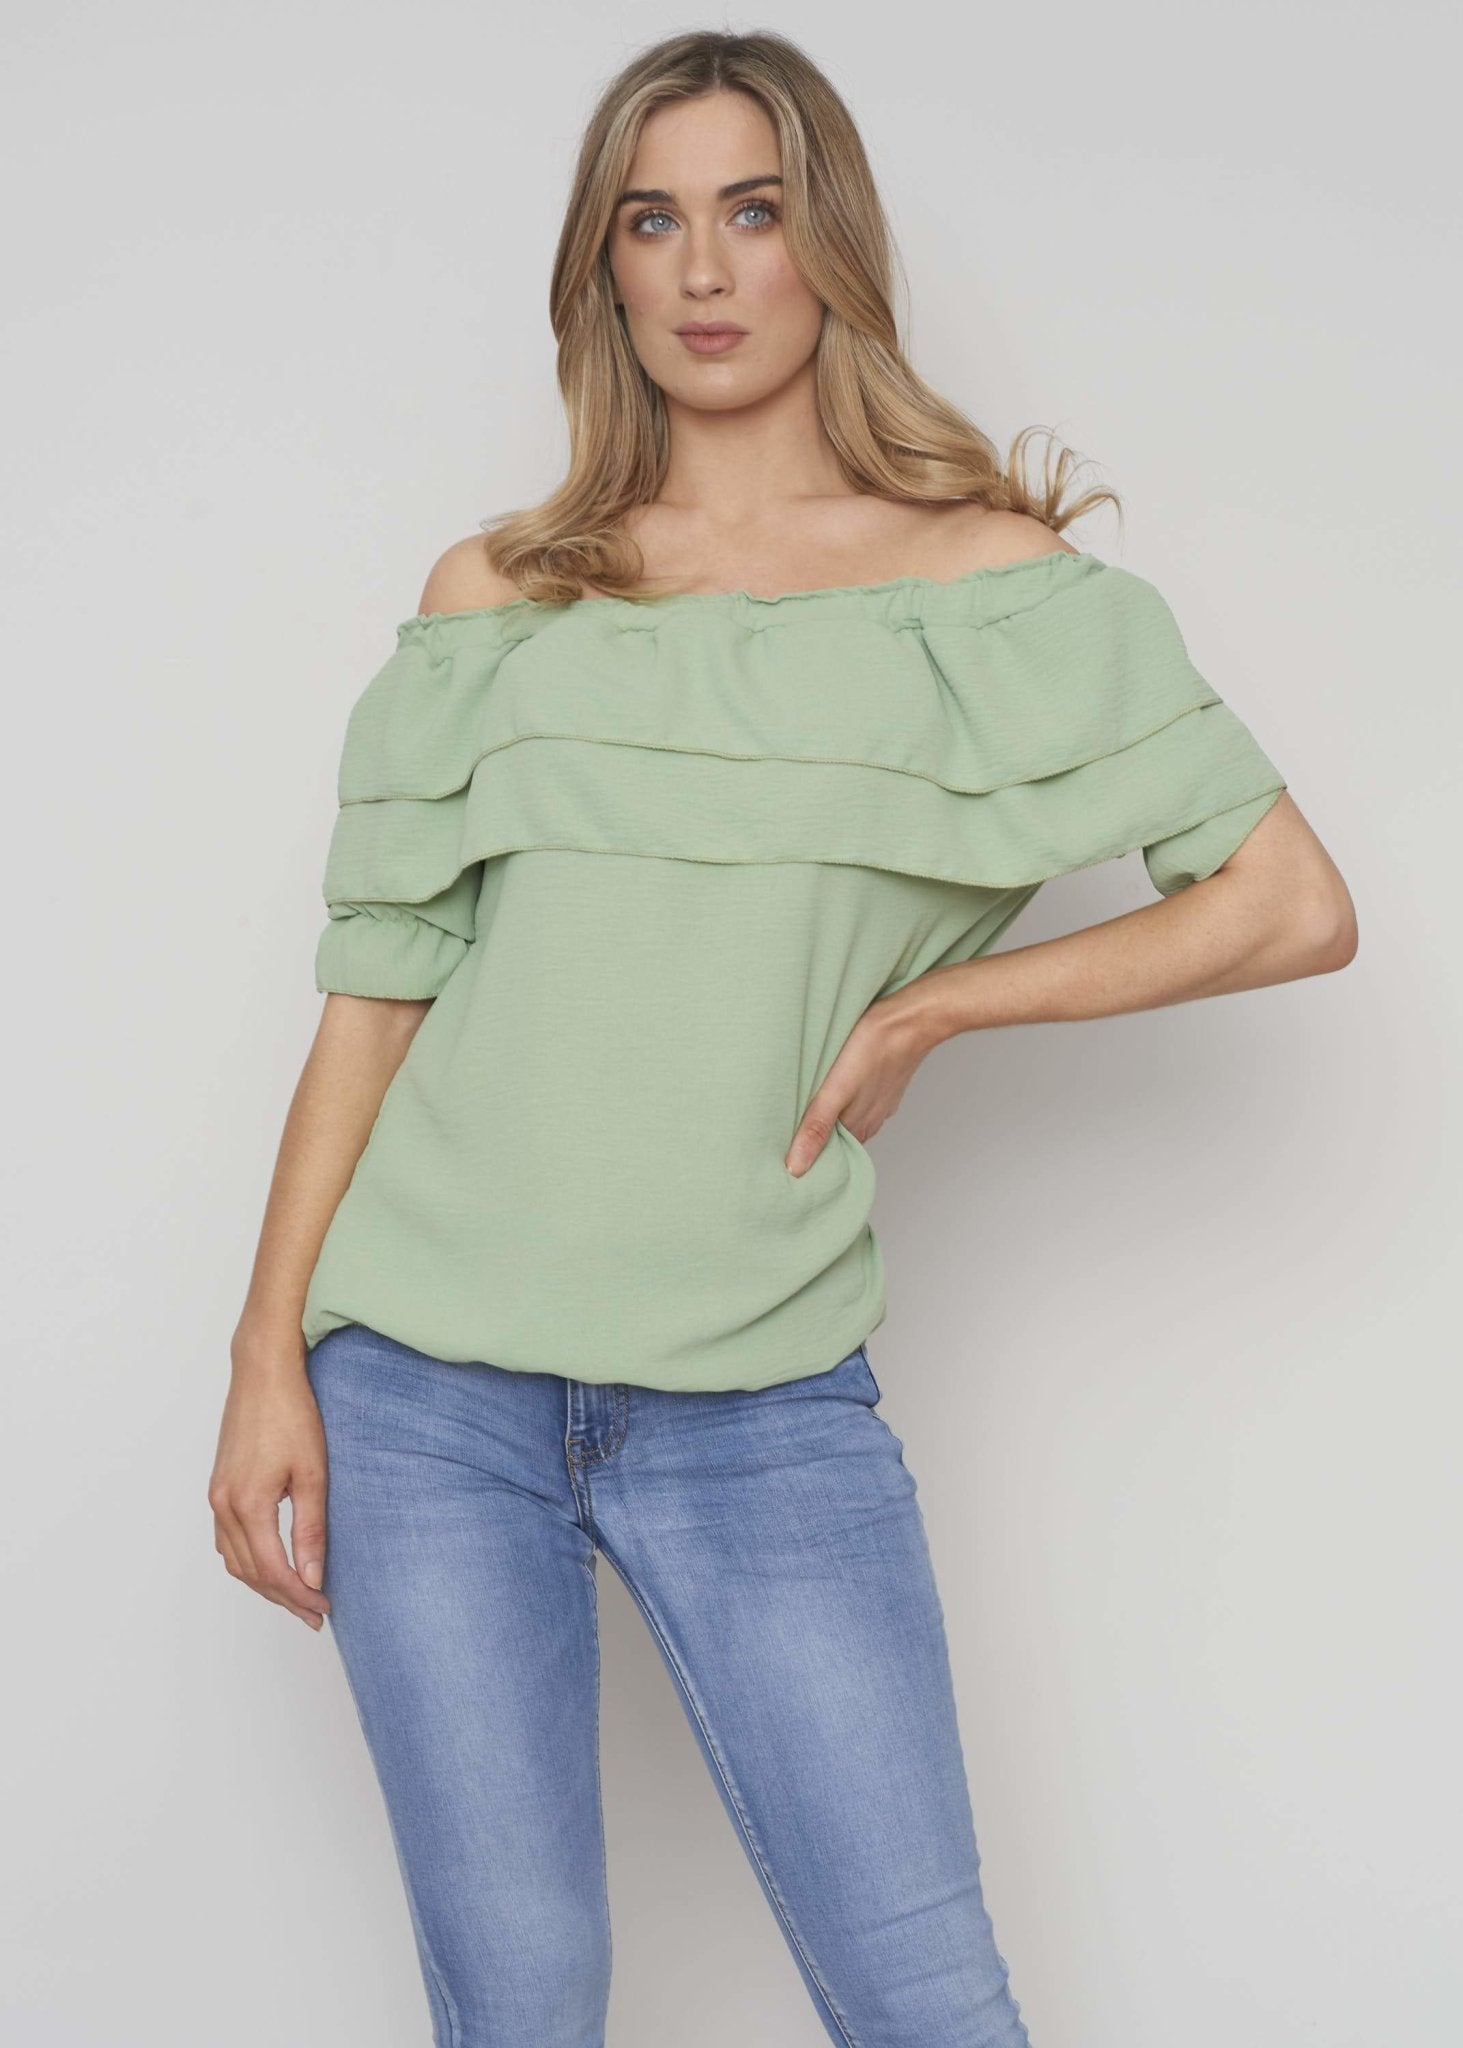 Danni Off Shoulder Ruffle Top In Sage - The Walk in Wardrobe